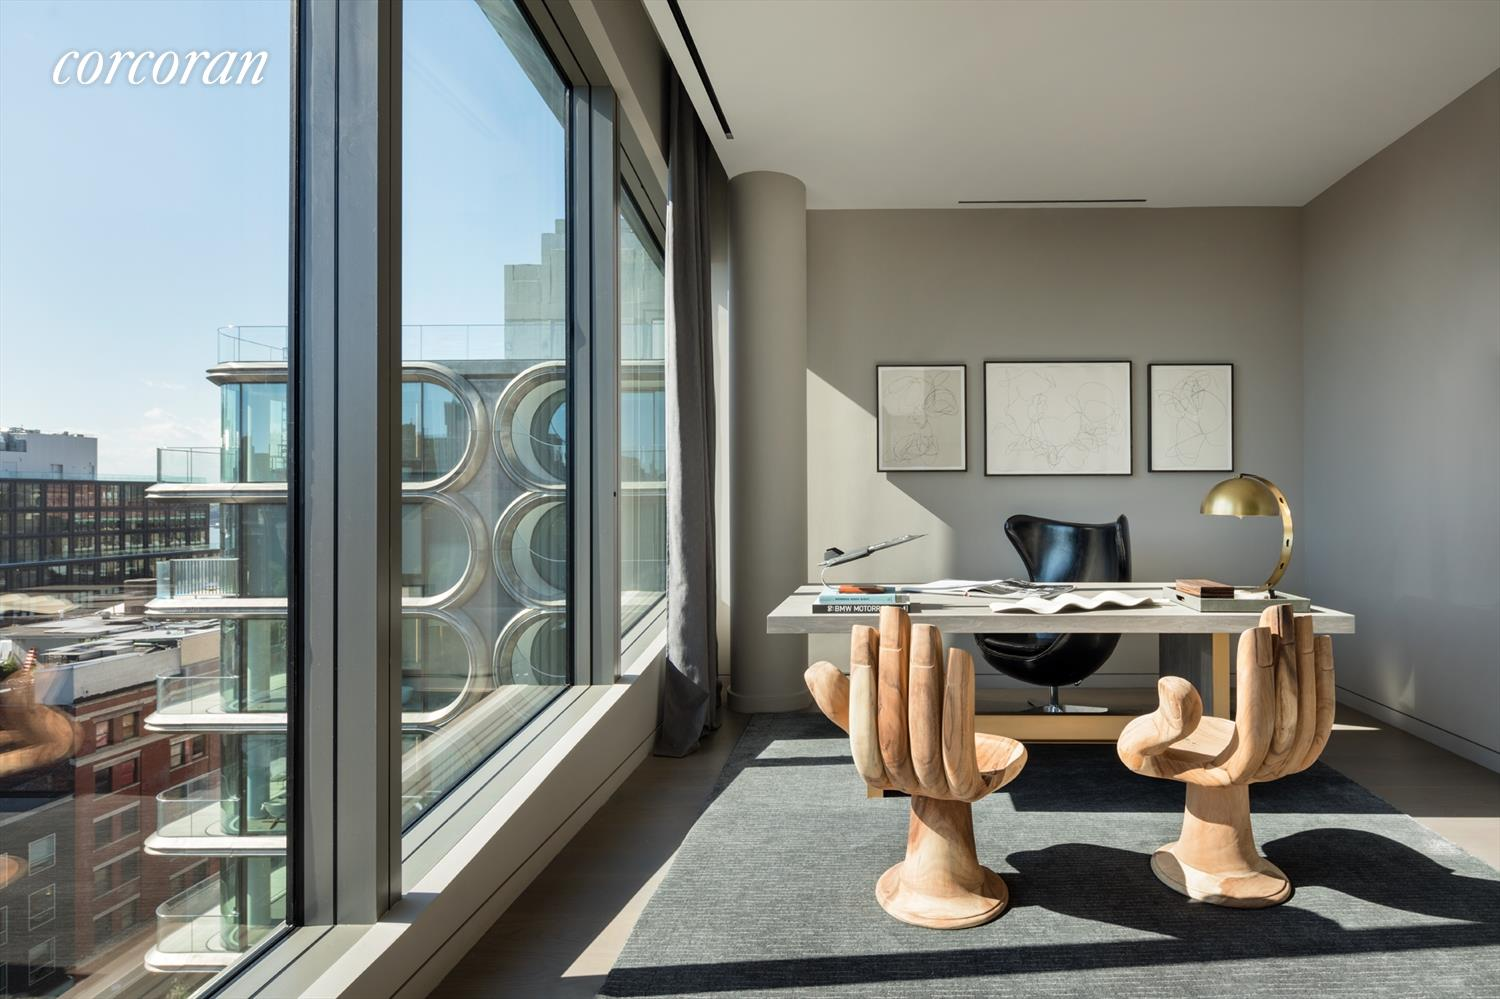 Zaha Hadid Penthouse, 520 West 28th Street, Chelsea, New York | A Home Office View |Corcoran | Finest Residences